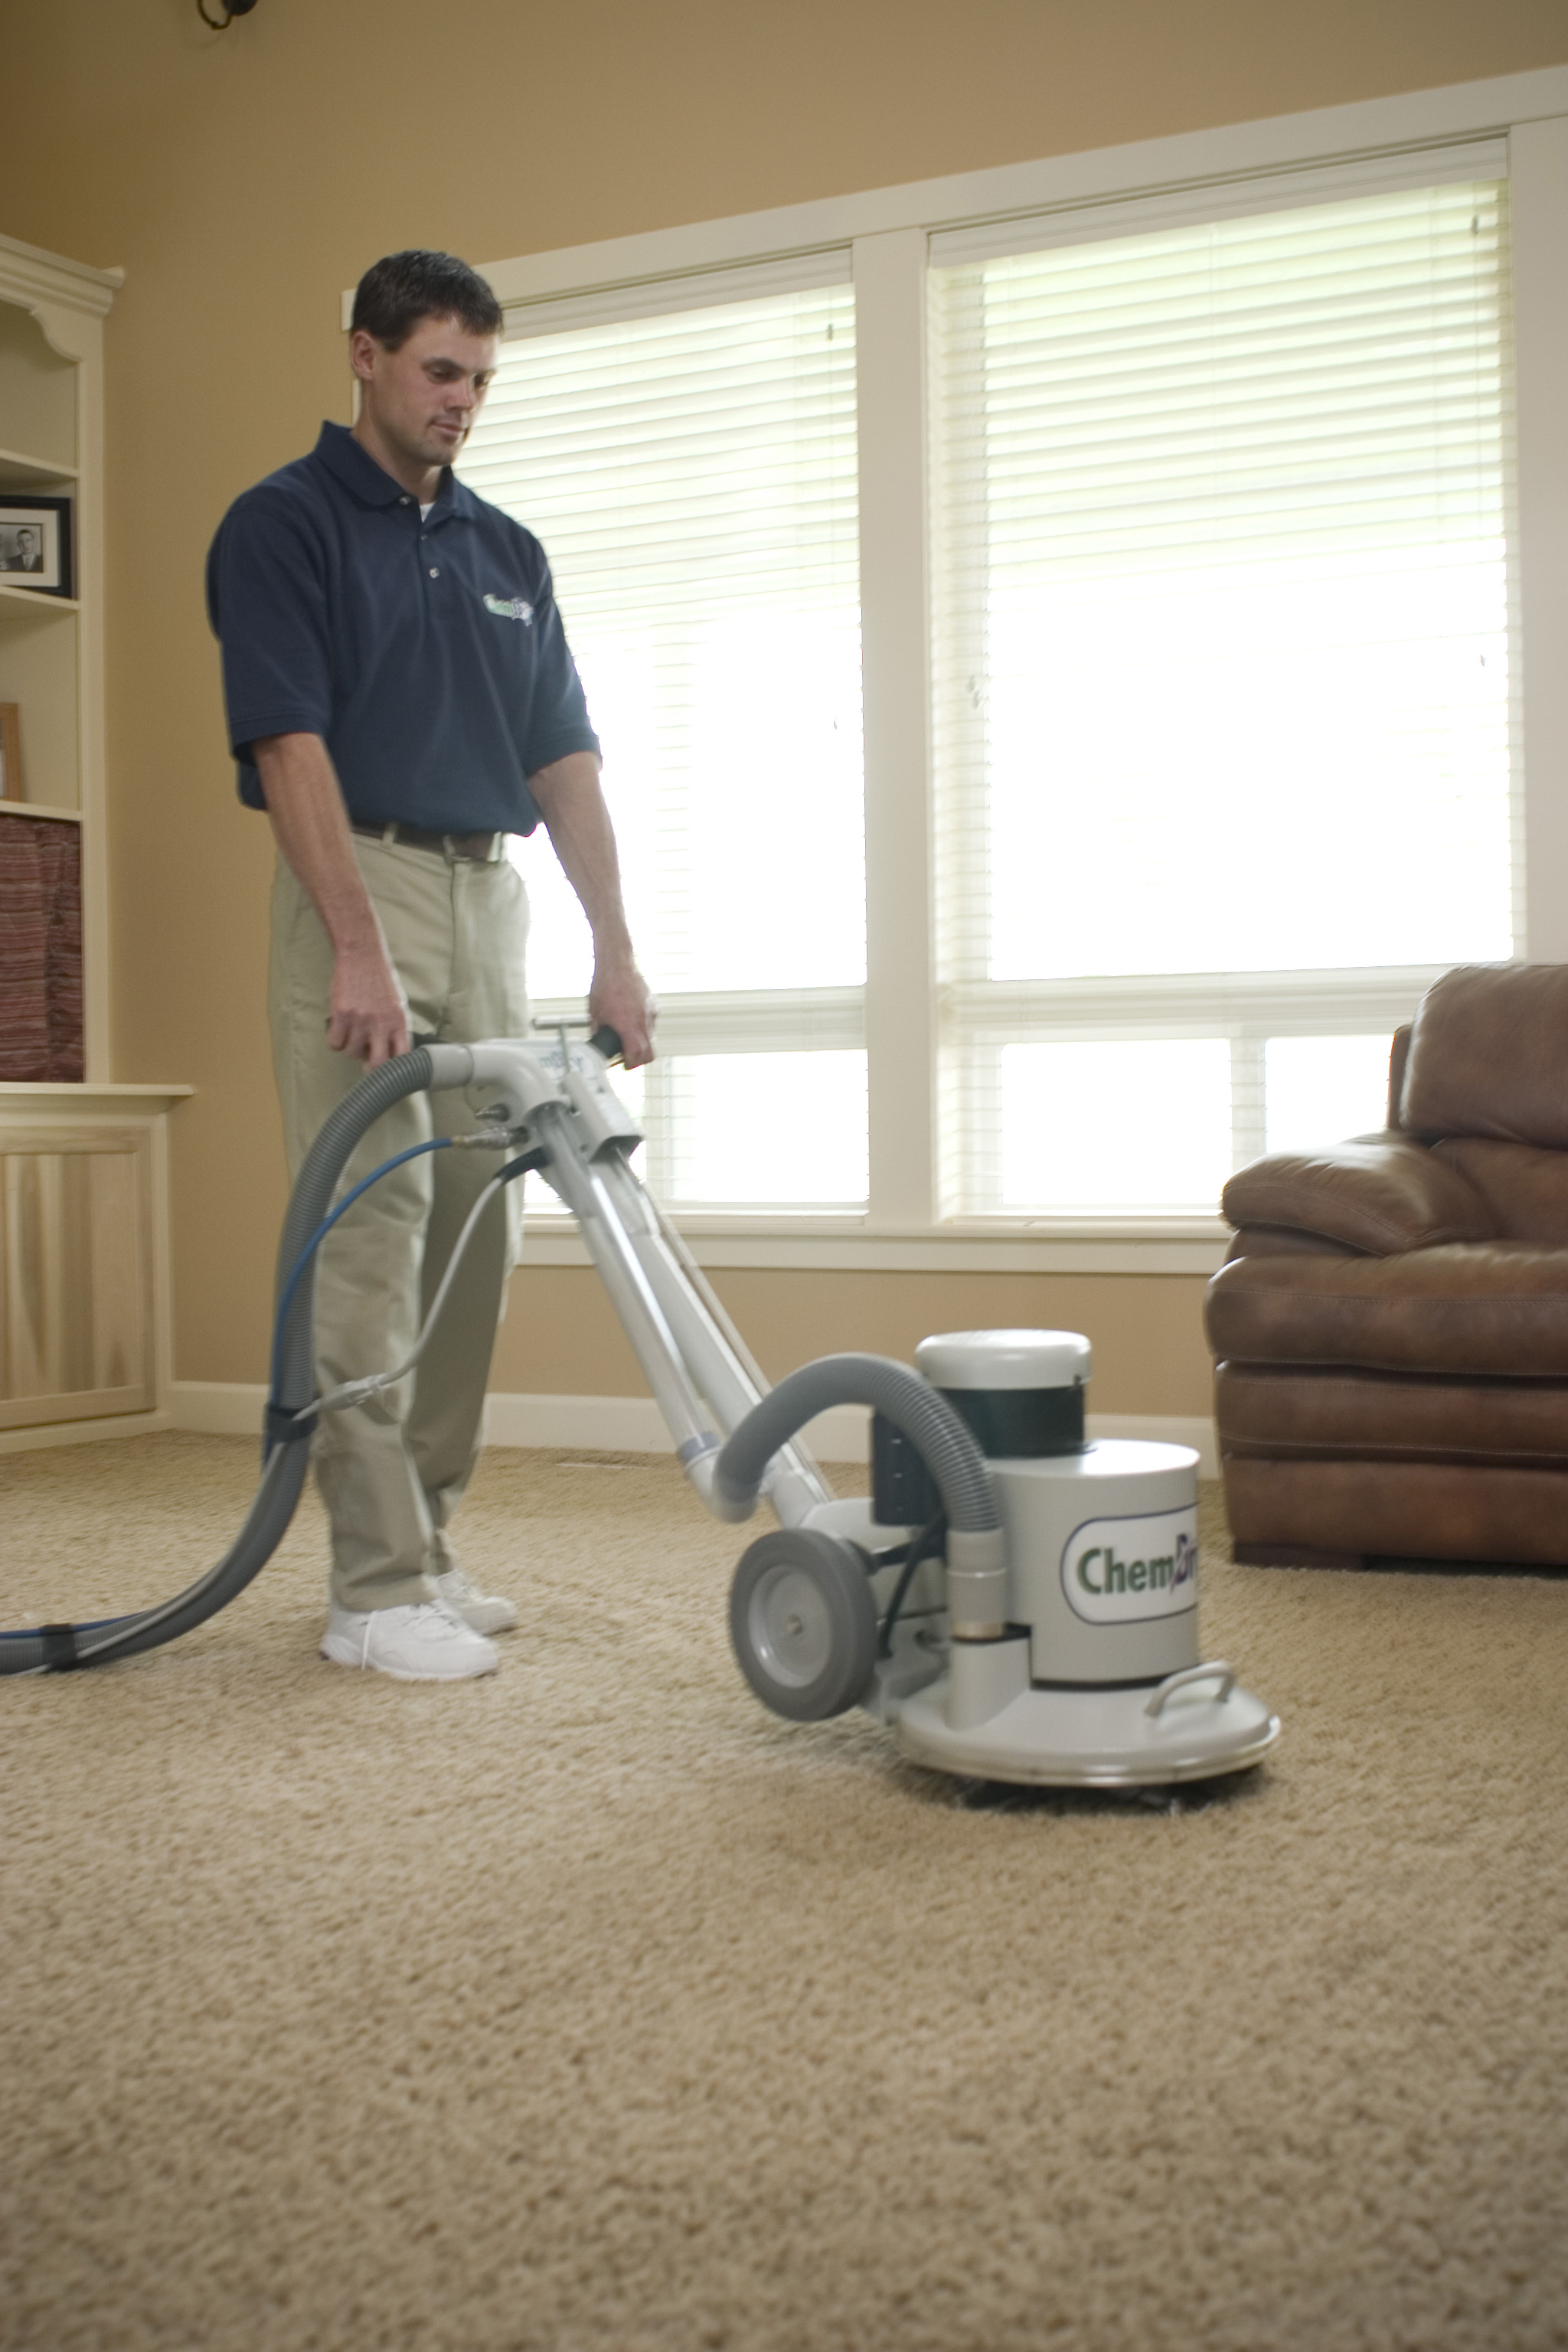 Clawson Chem-Dry provides professional carpet cleaning in Odenton